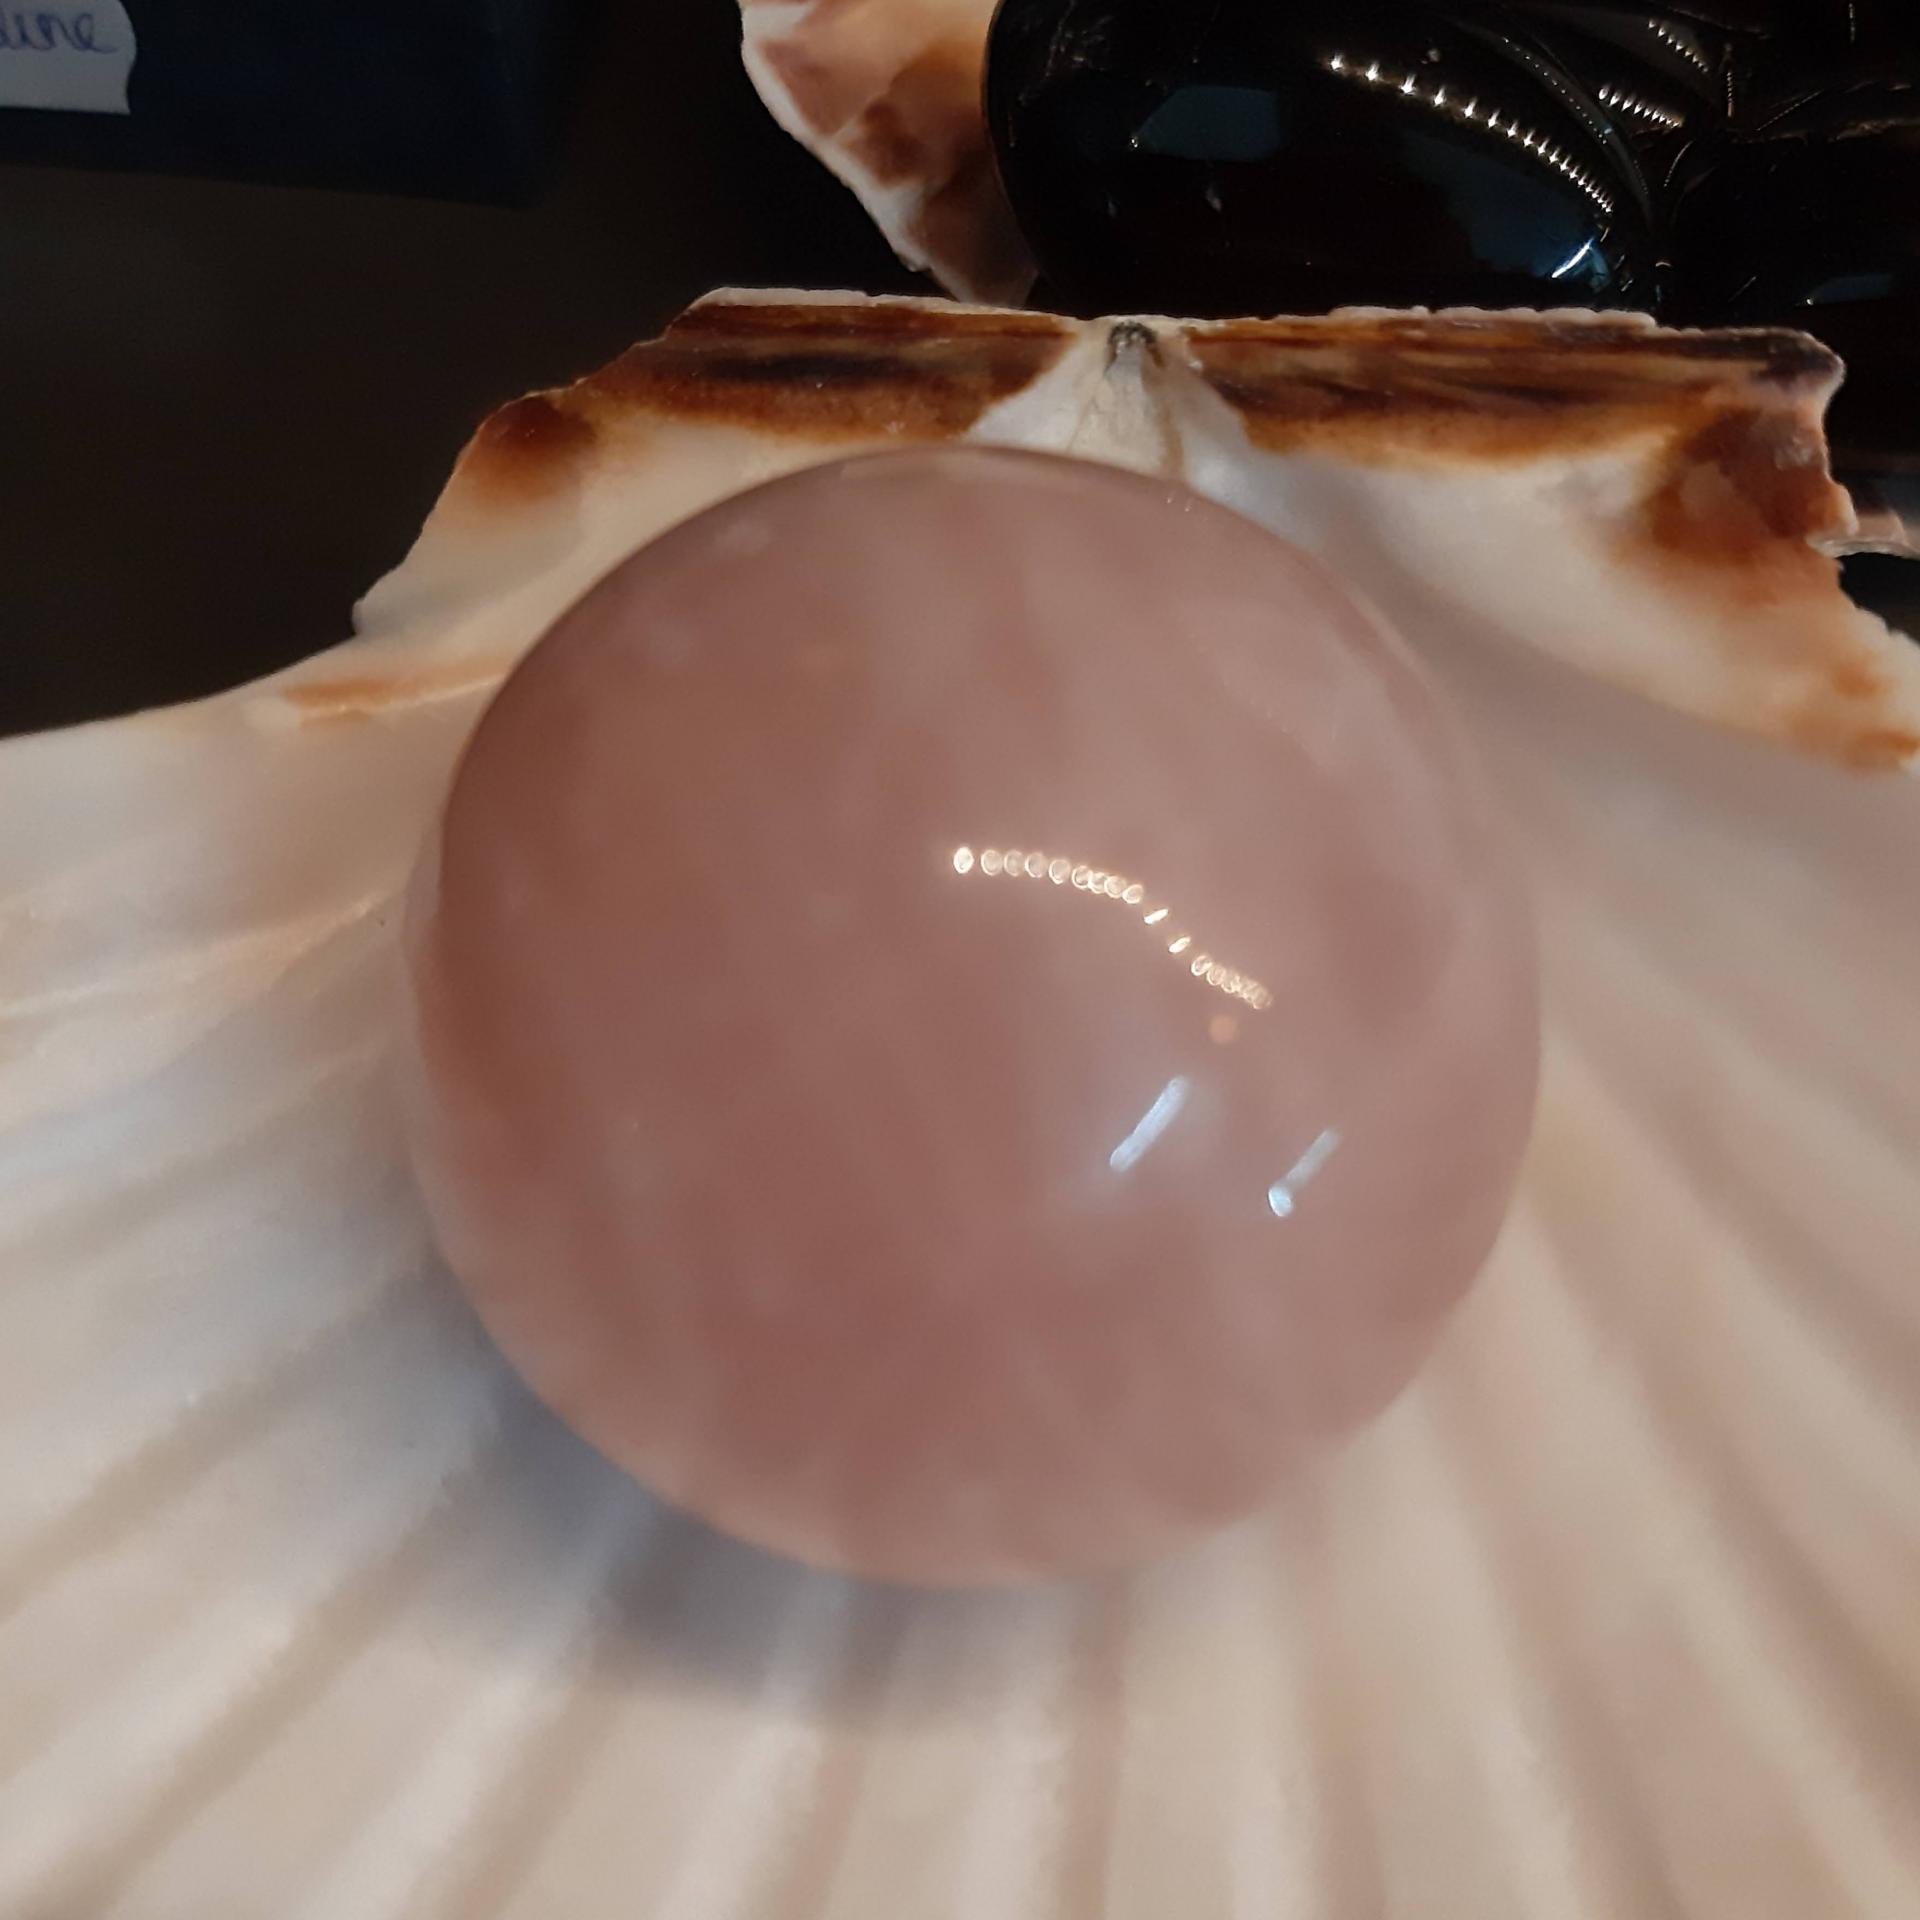 Sphere de quartz rose